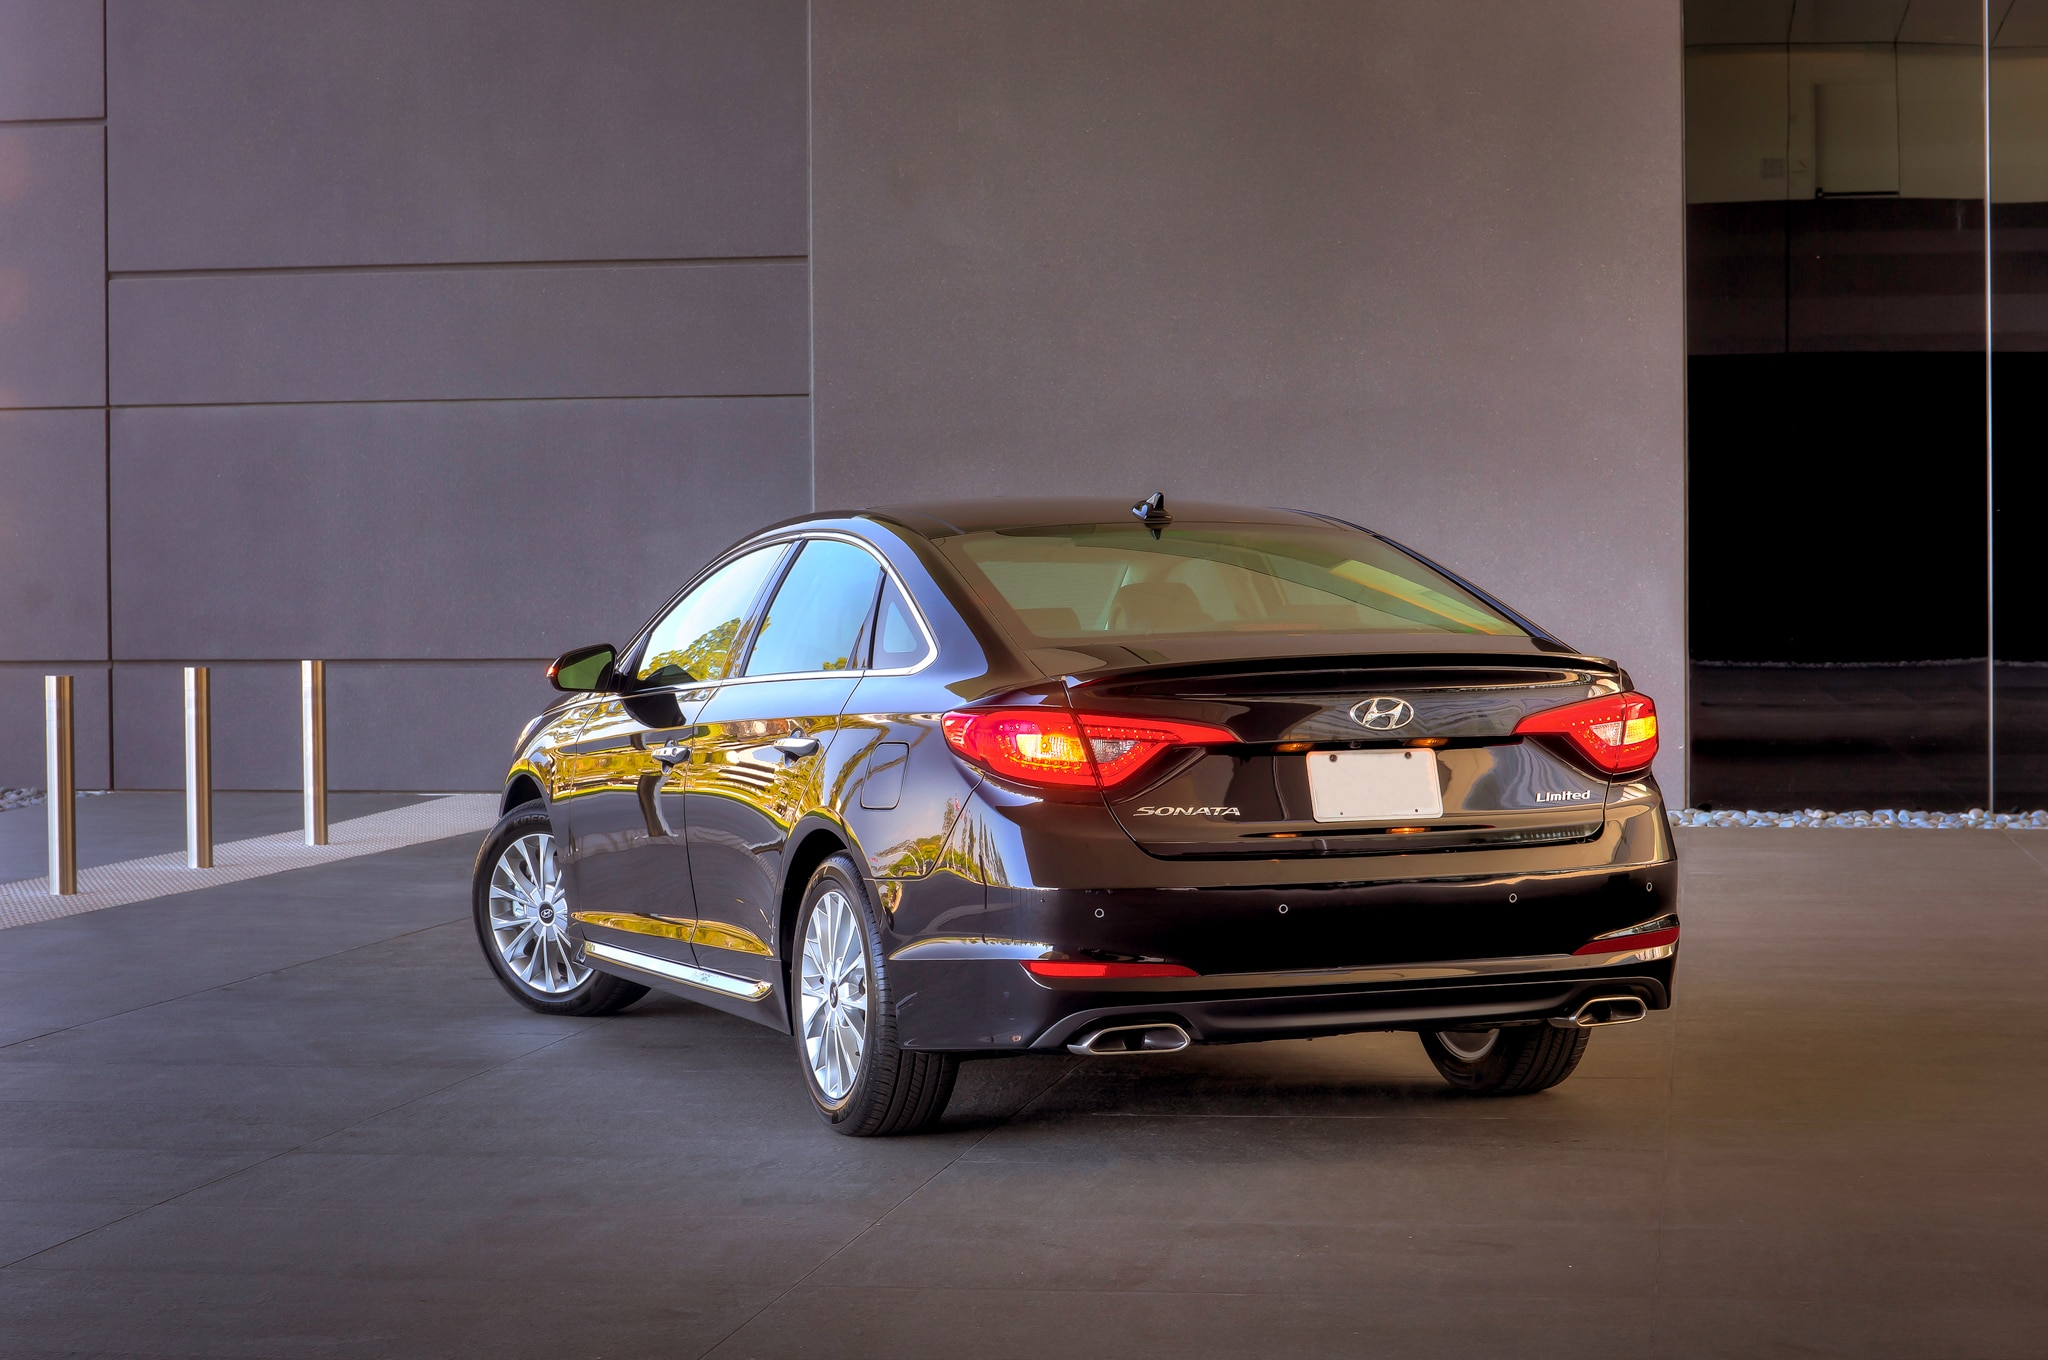 2015 hyundai sonata pricing options and specifications cleanmpg - Show More